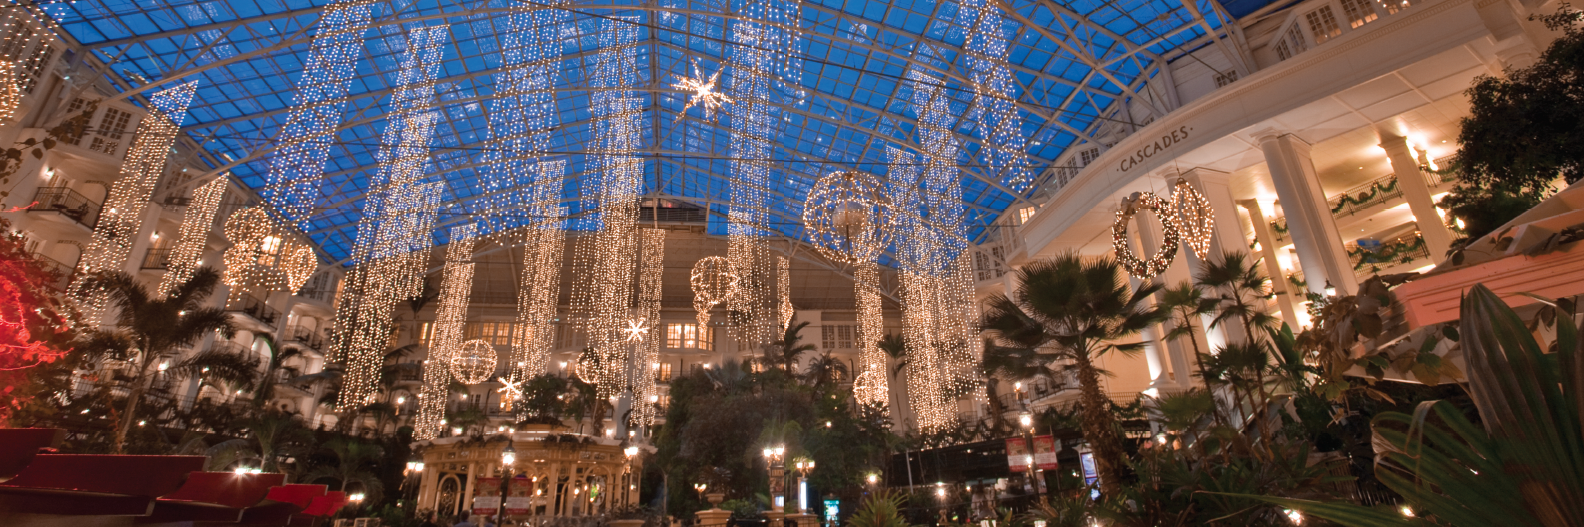 Meet Me At Gaylord Opryland: Storied History and Timeless Images from Nashville's Gaylord Opryland Resort and Convention Center